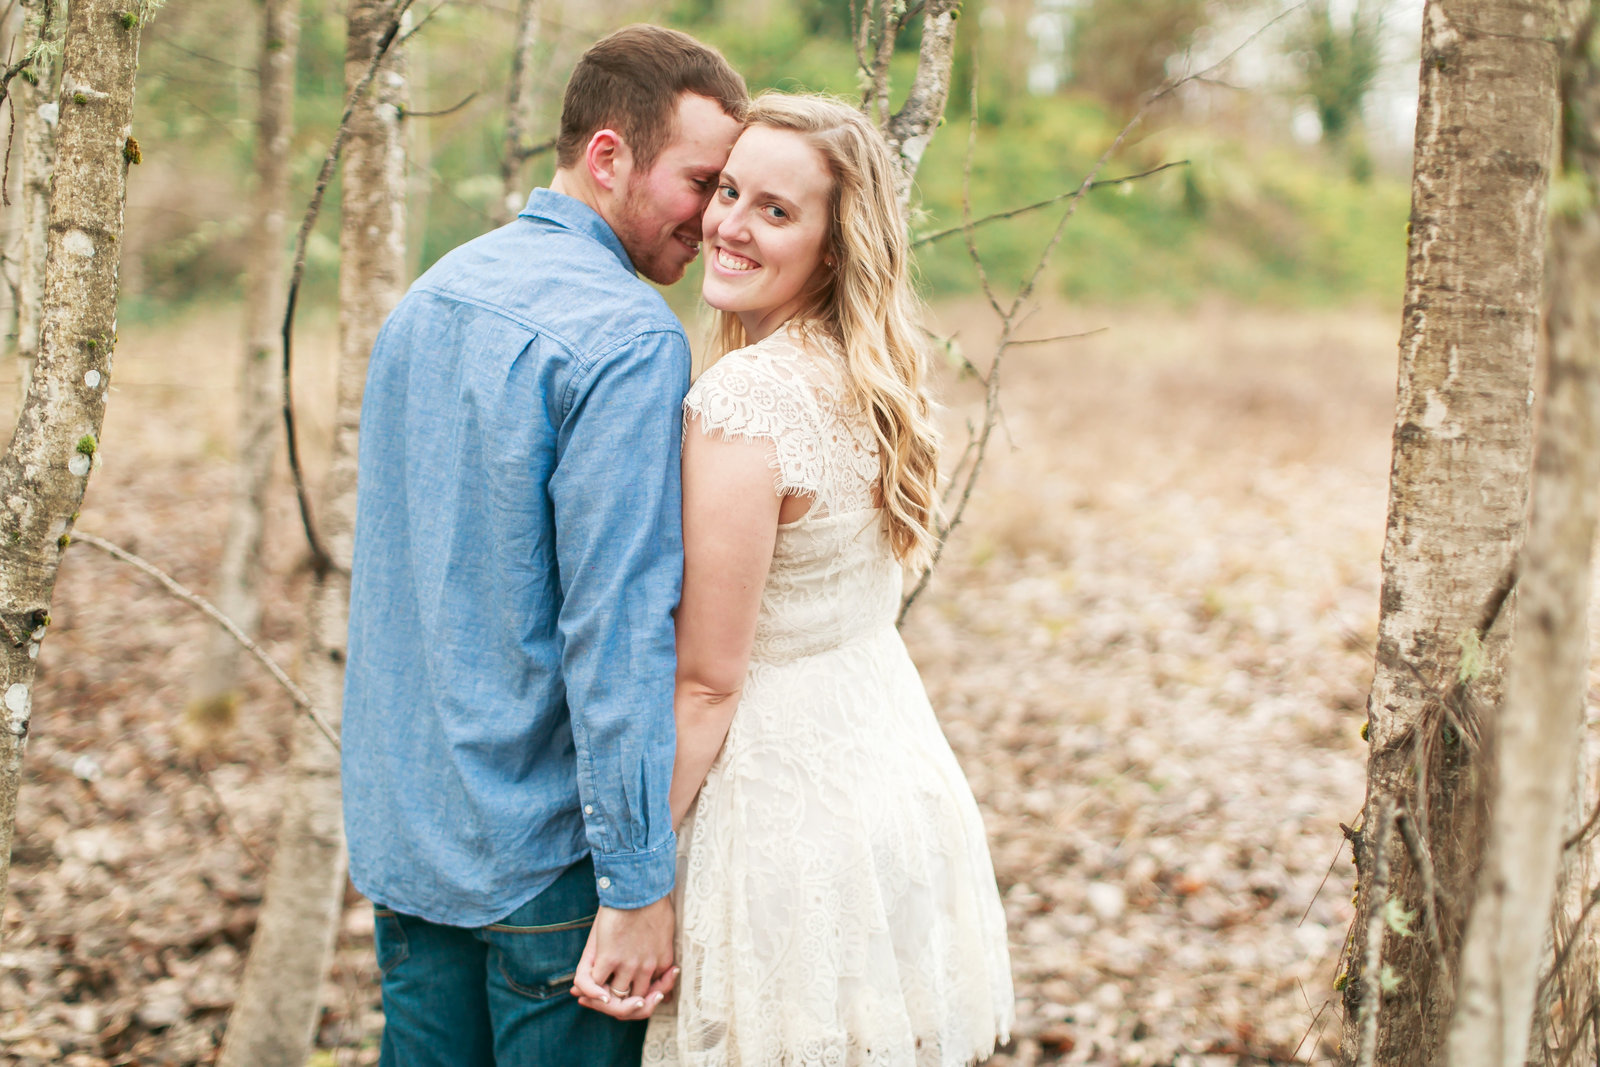 shelby-james-engagement-photos433316